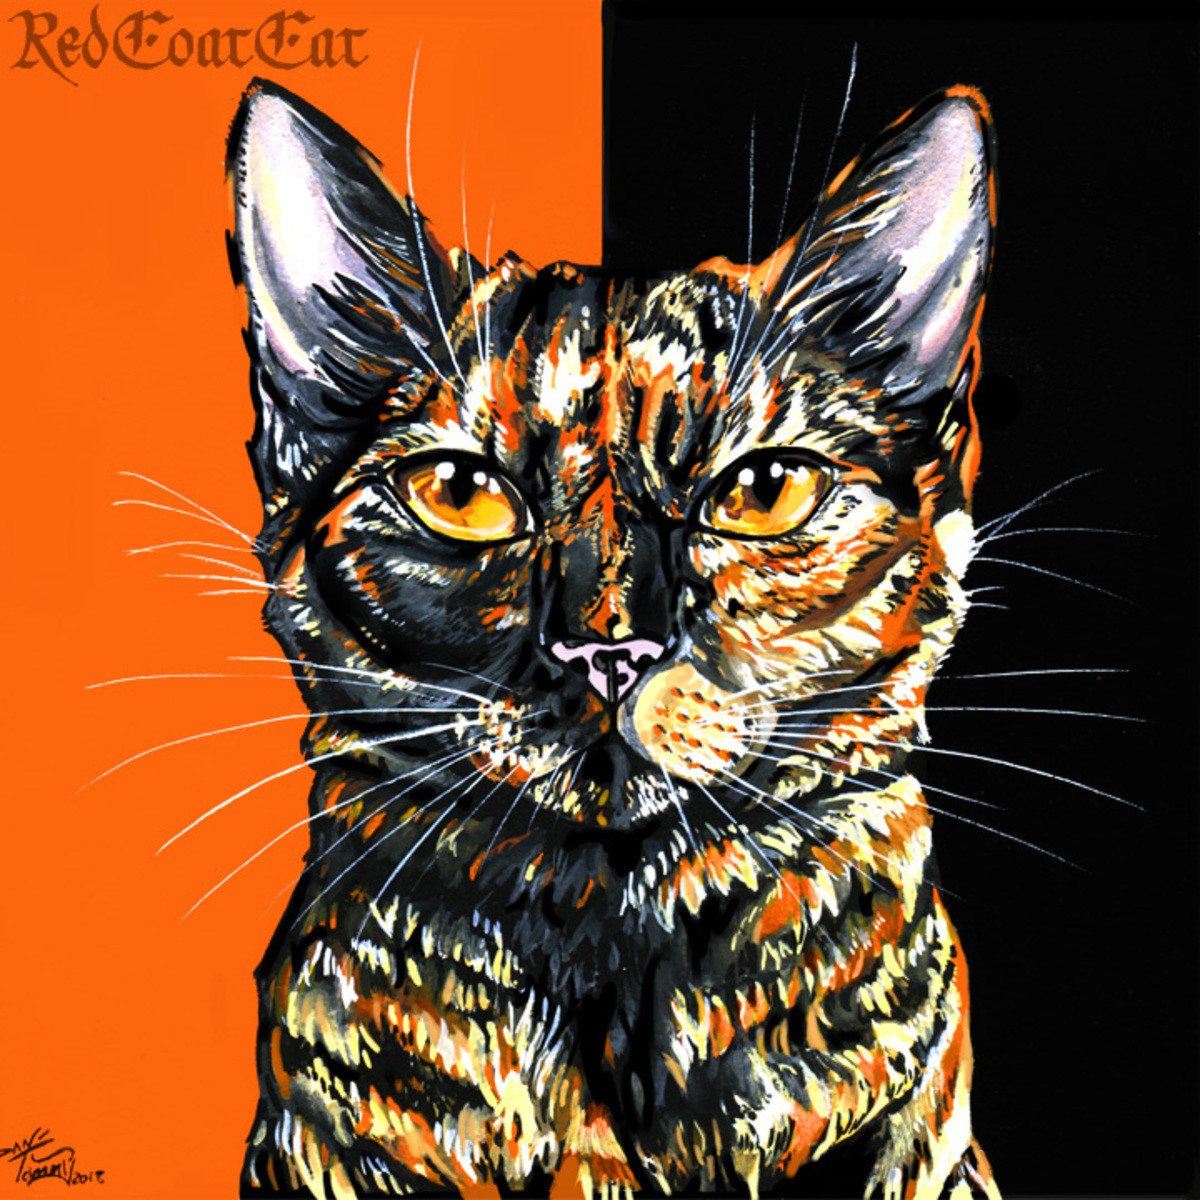 RedCoatCat . Edition 113 of Furry Art You Could Show Your Friends. Today's featured artist is RedCoatCat, a Canadian artist who draws a lot of his